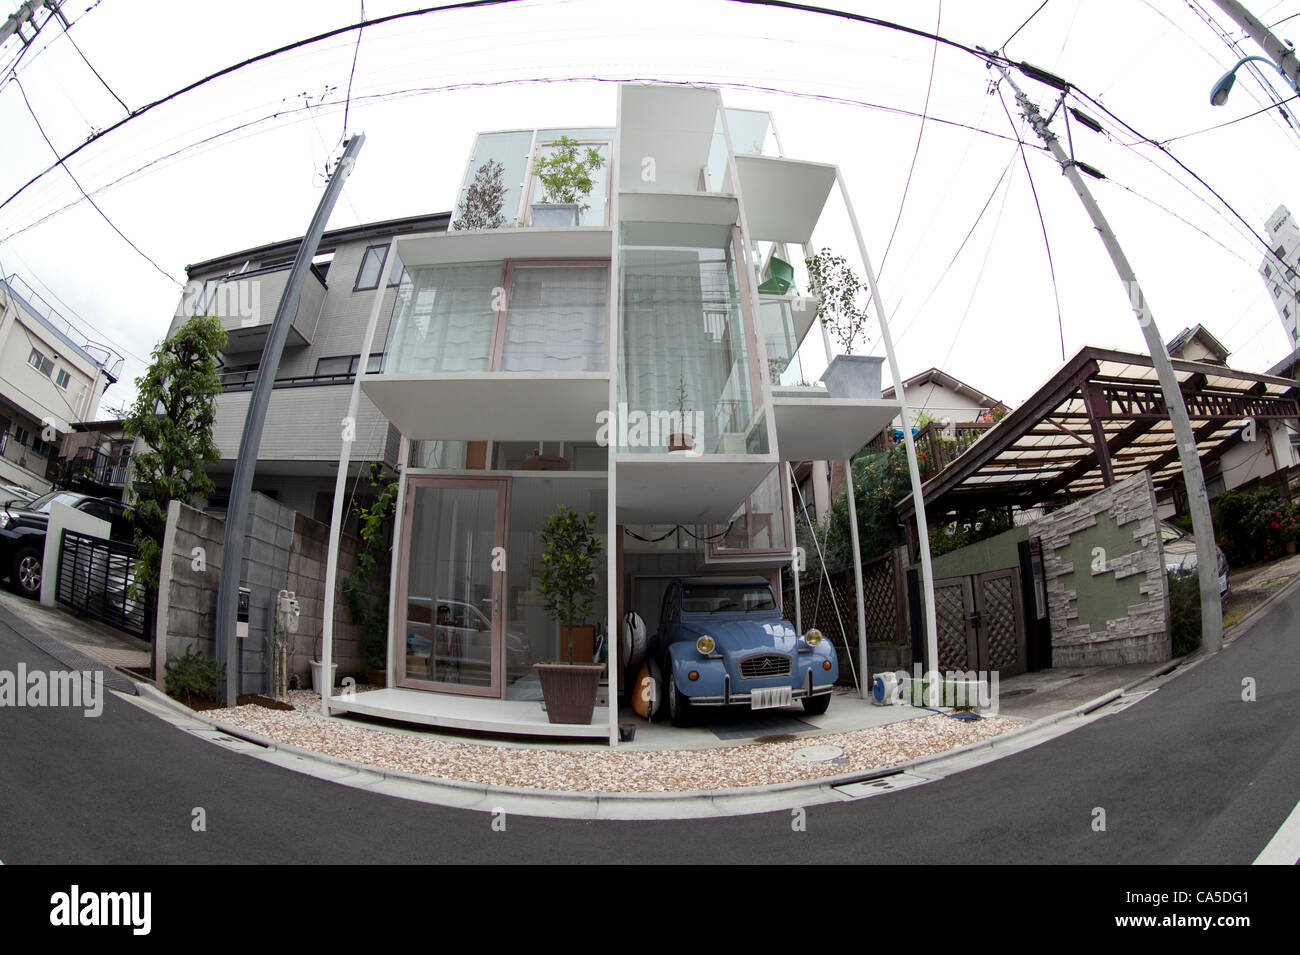 11.06.2012 Tokyo, Japan. The transparent house 'House NA' designed by Sou Fujimoto is located in a residential - Stock Image